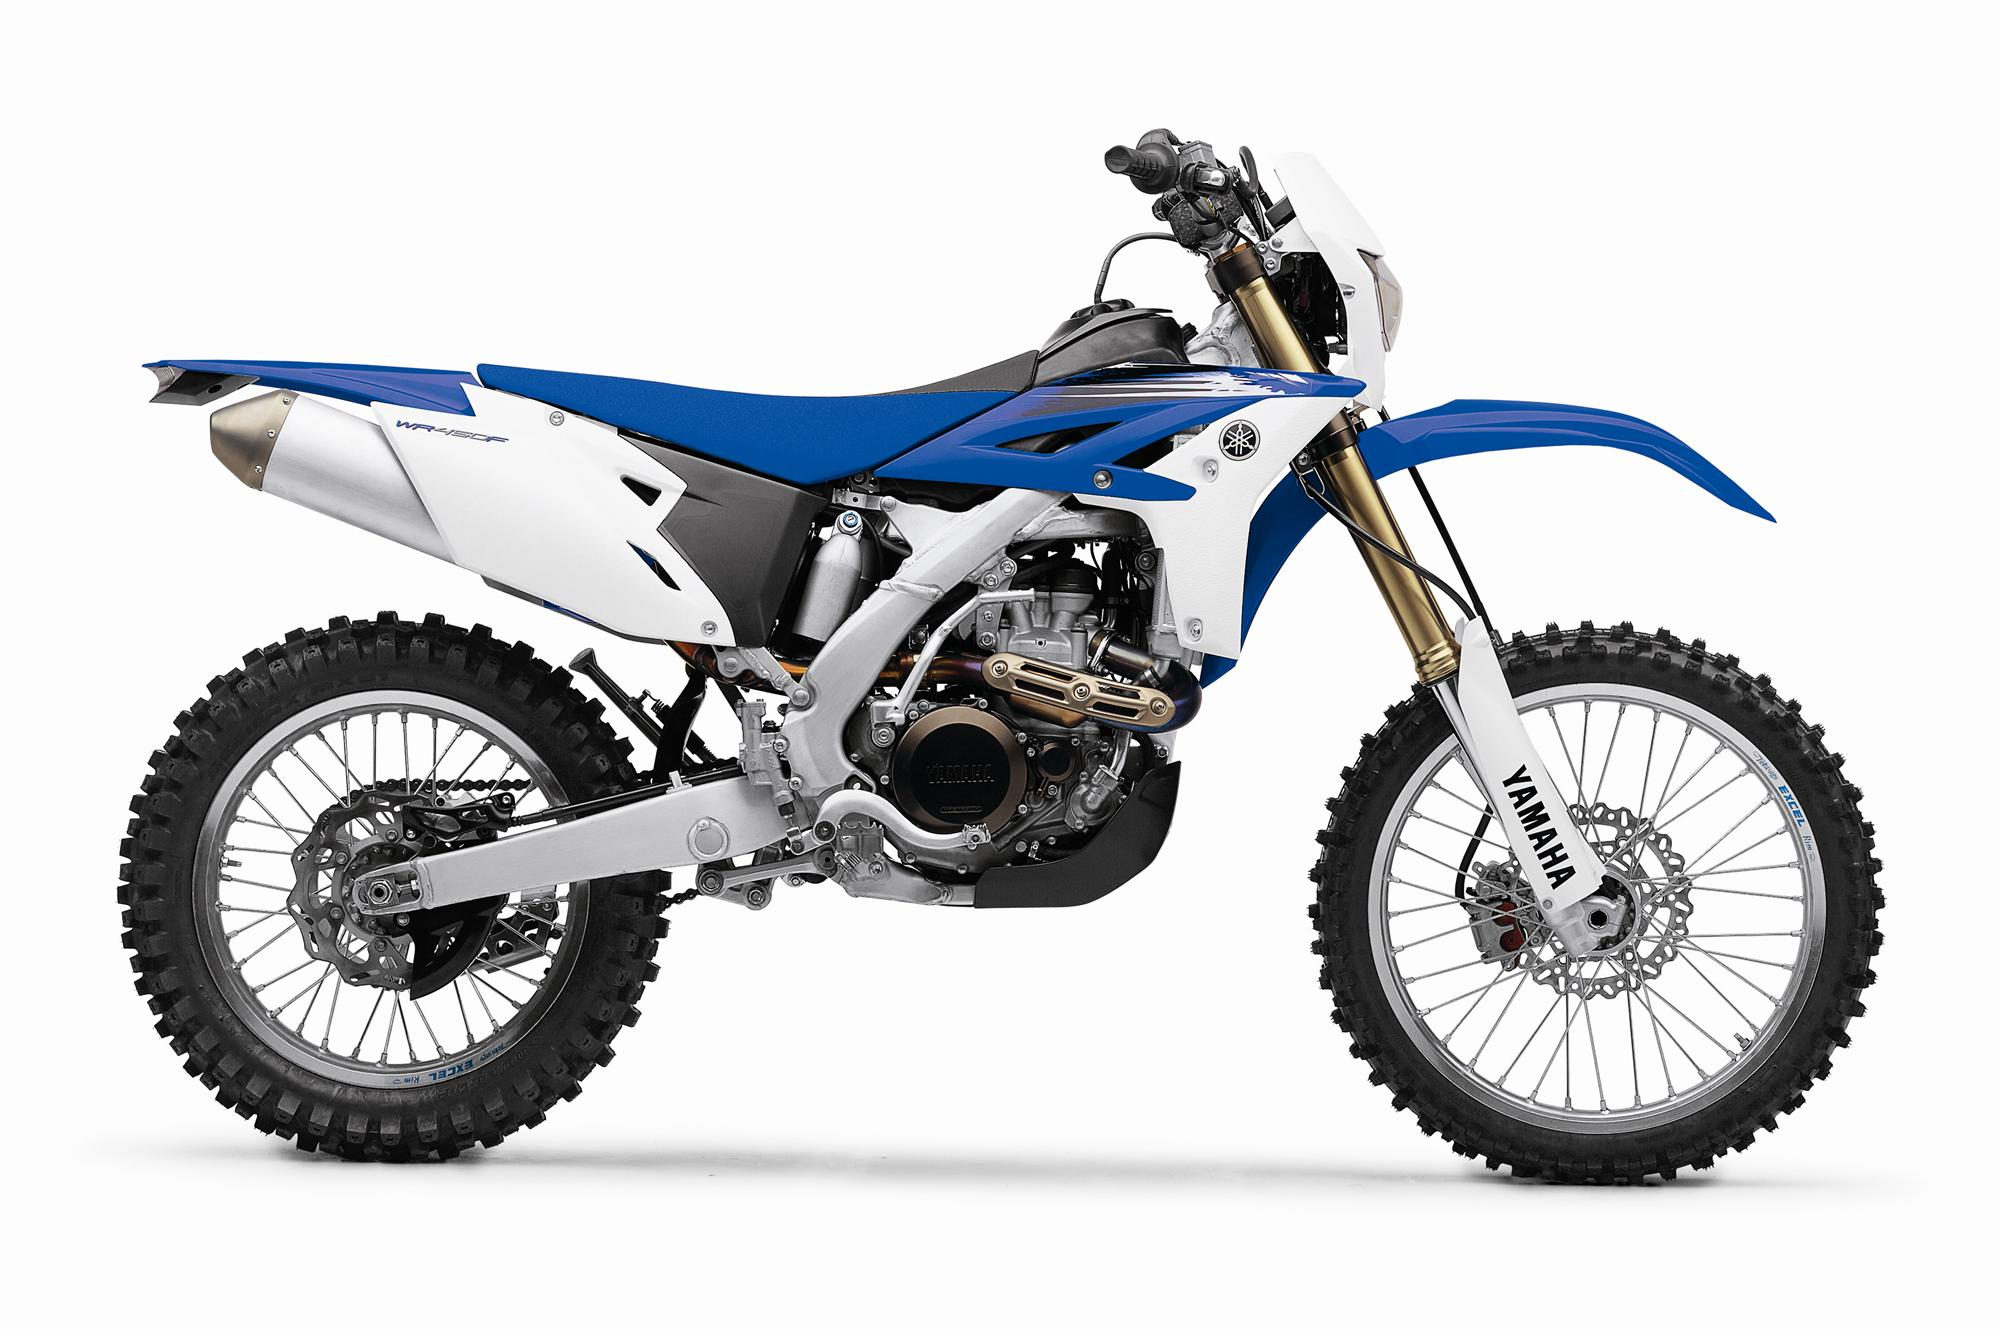 yamaha wr450f specs 2011 2012 autoevolution. Black Bedroom Furniture Sets. Home Design Ideas